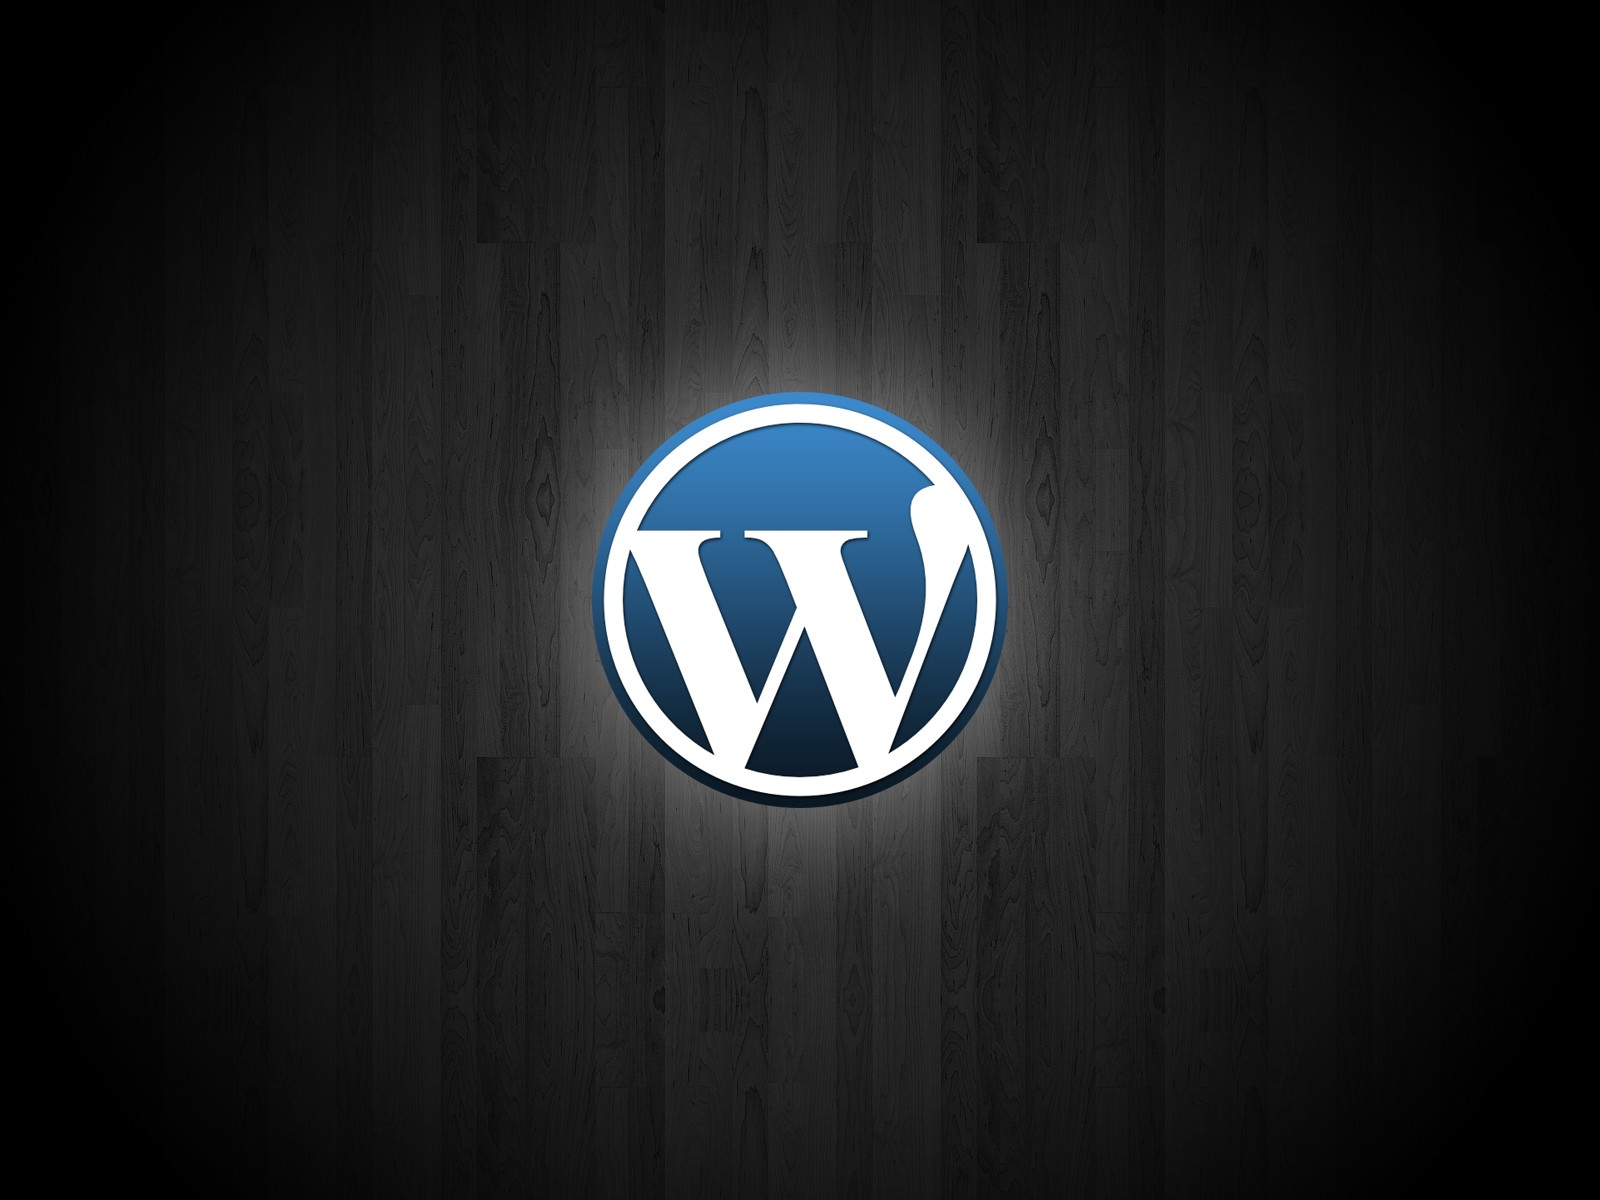 Optimize your WordPress site HeadBody which means all 1600x1200